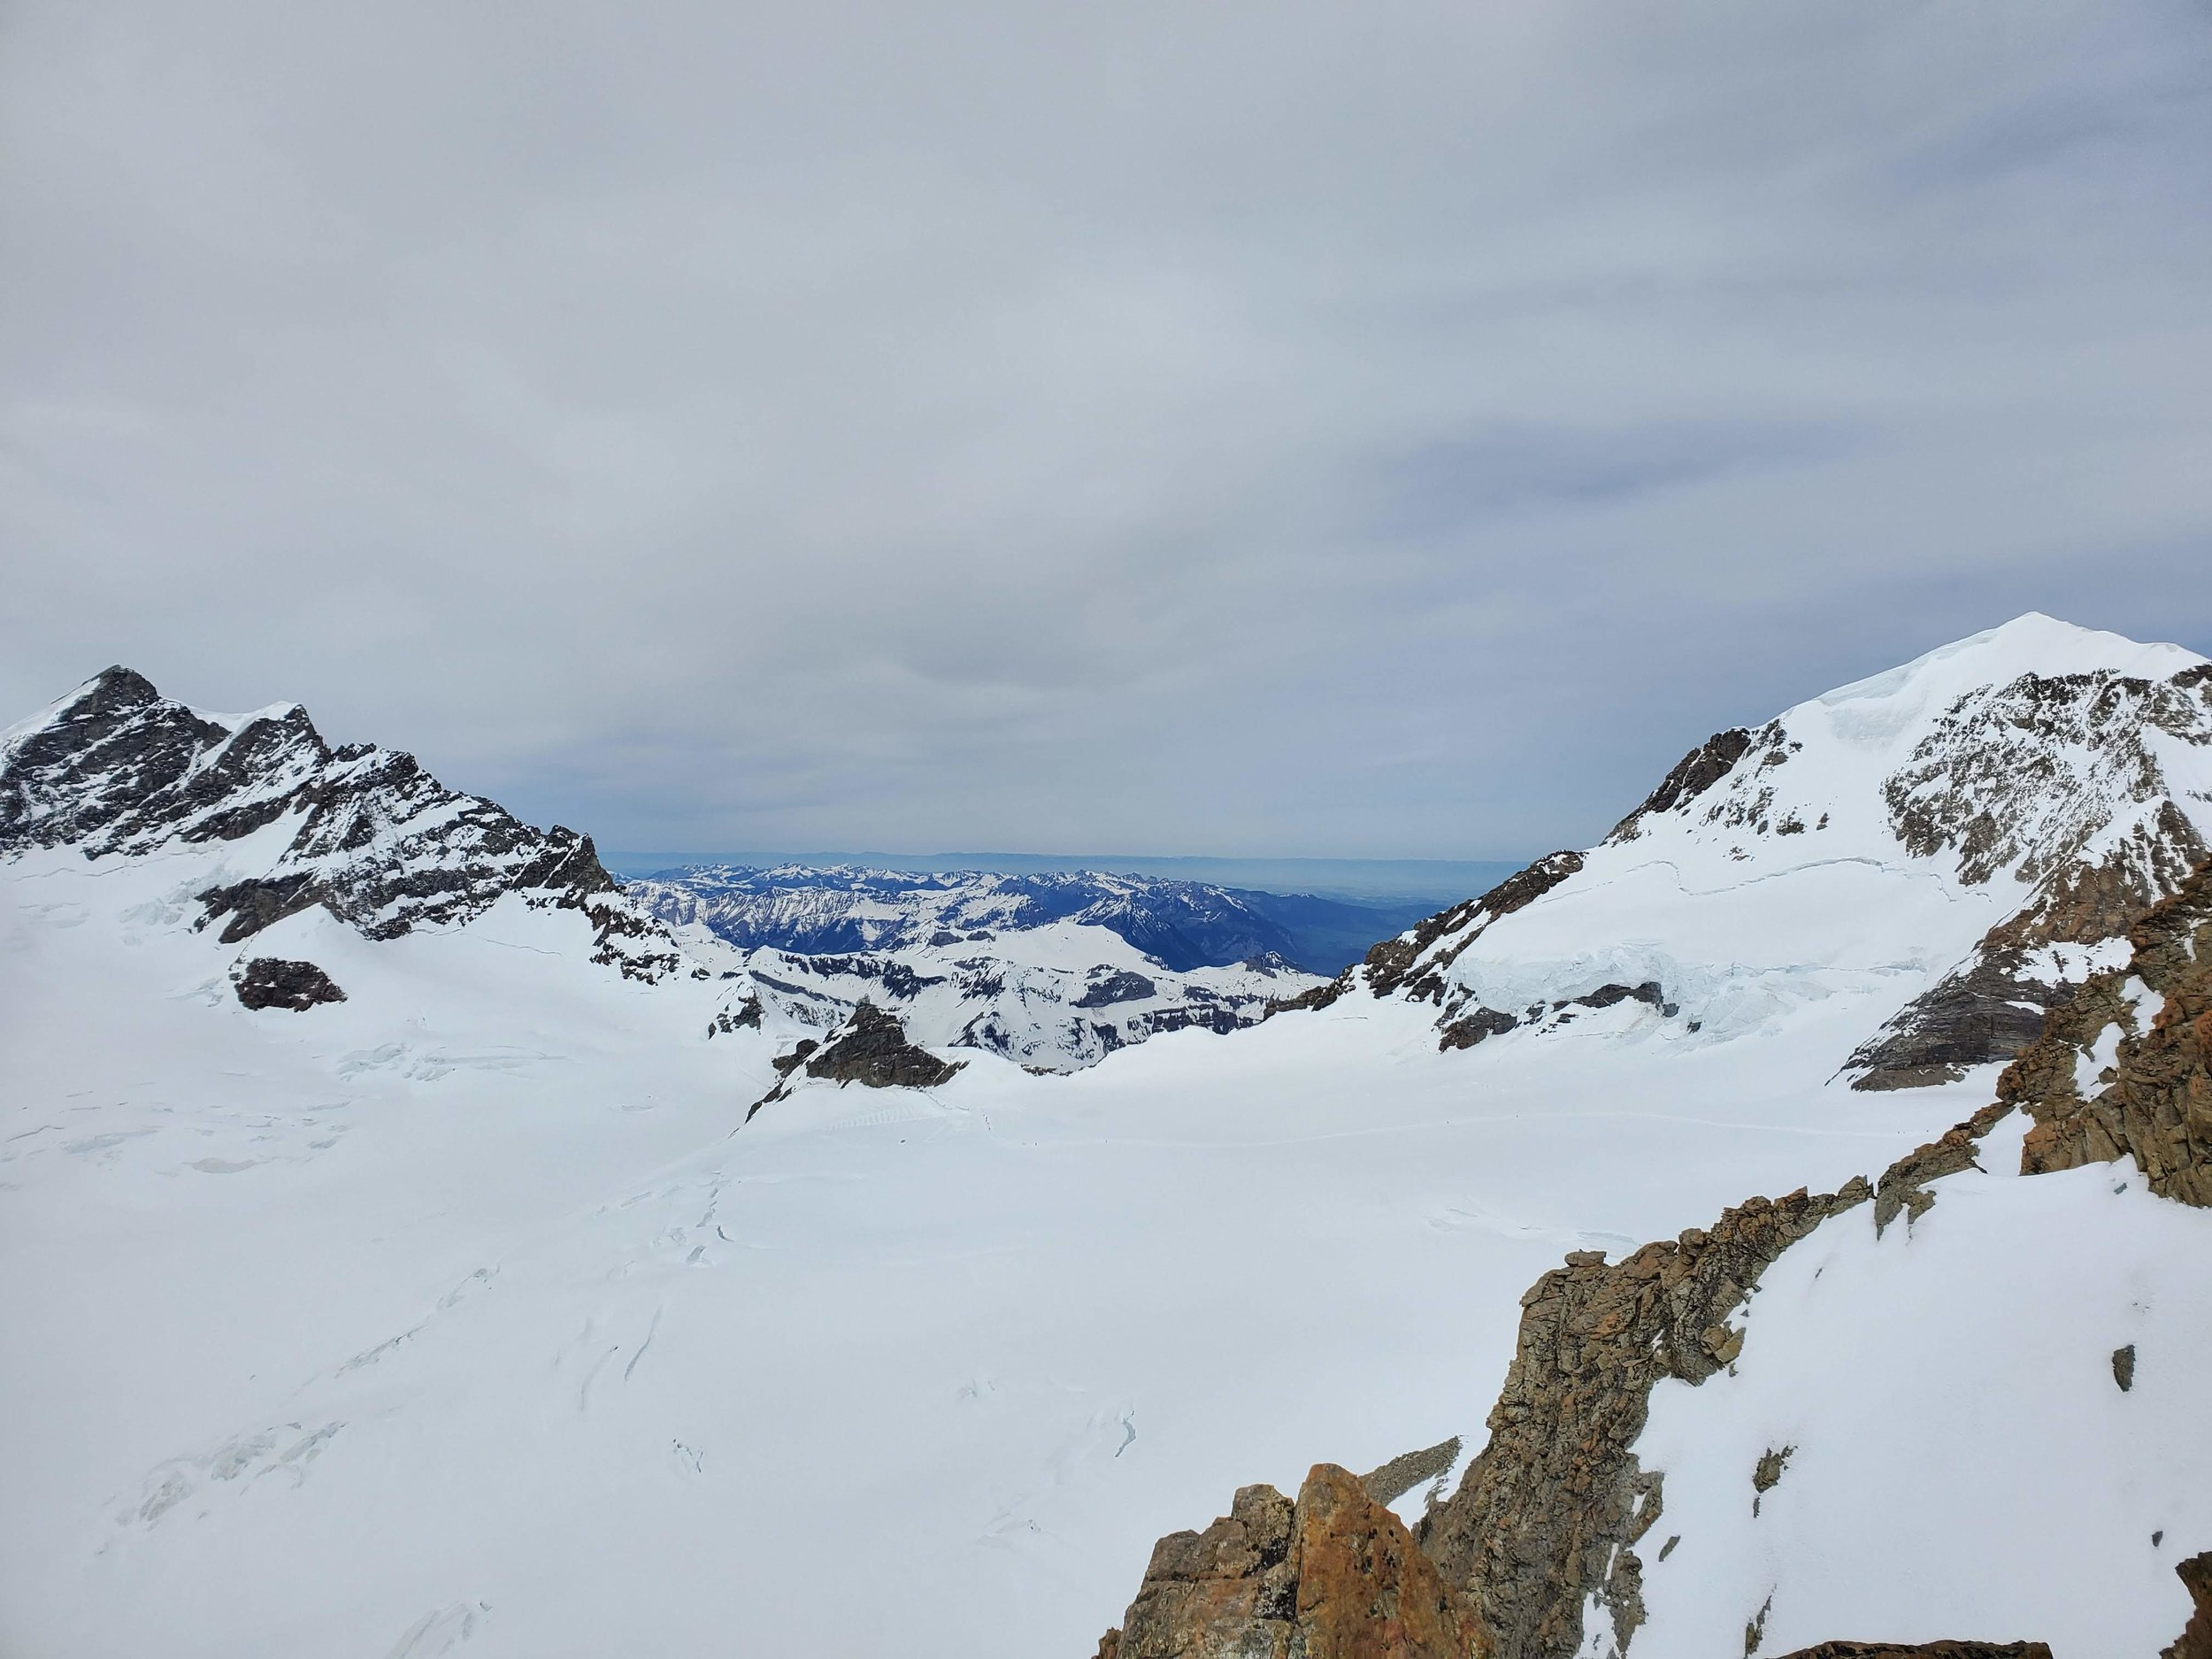 Looking back to the Jungfraujoch station (lower center) with the Junfrau (left) and the Mönch (right, top just cut off). On our last trip here we climbed the Mönch via the rock/snow ridge line in the right of this photo (and I was so terrified I swore I'd never come back haha (being a good climber means having a bad memory).